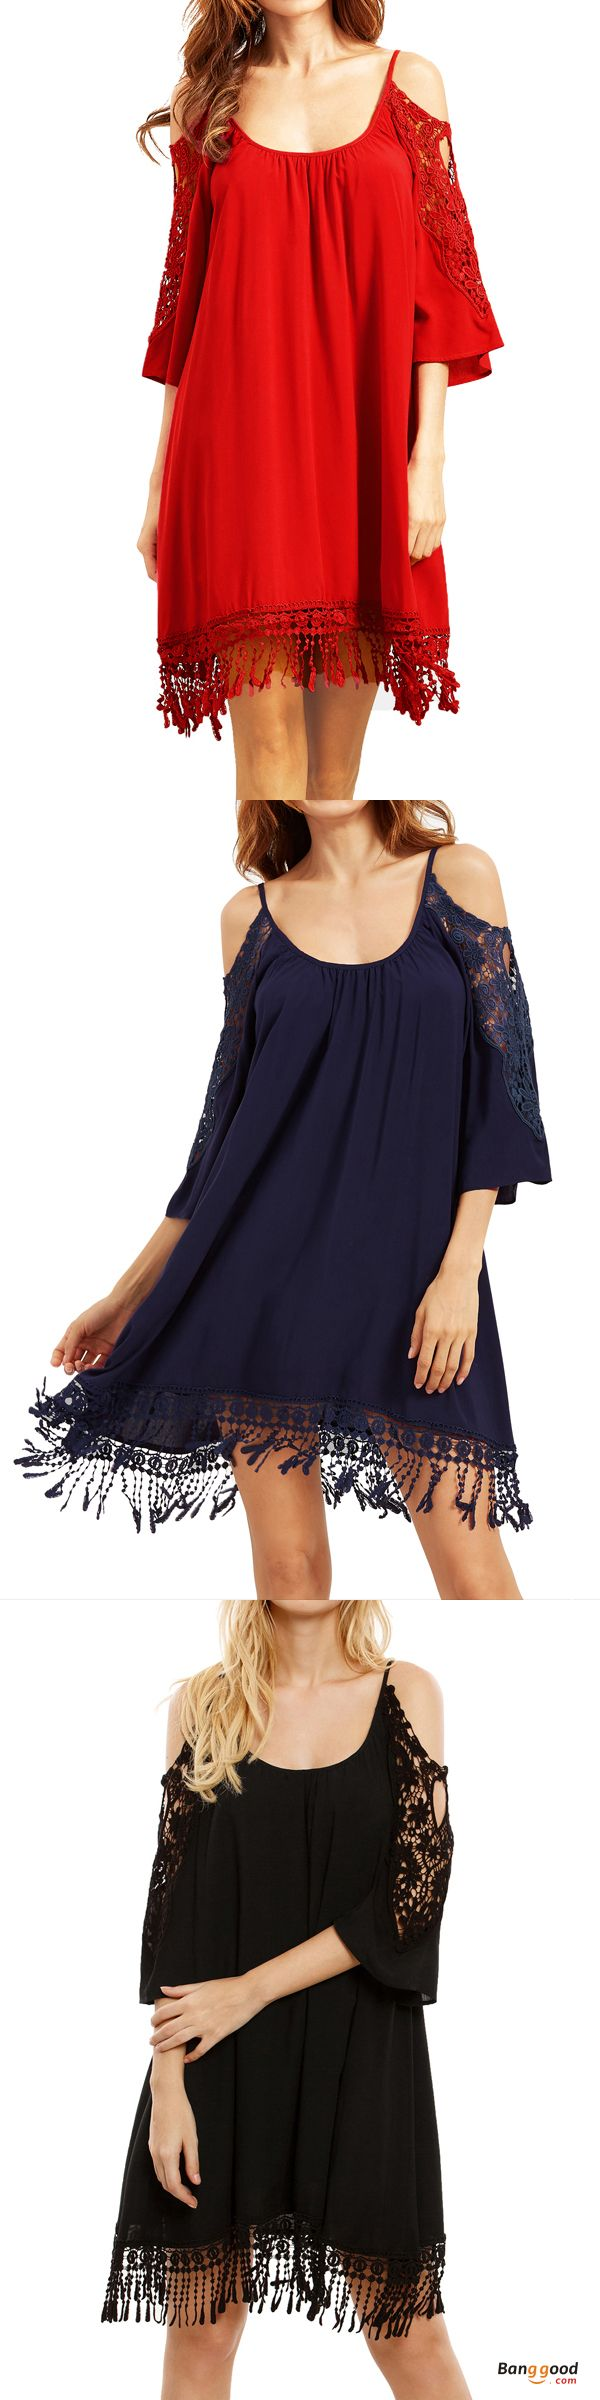 US$19.29+Free shipping. Women Dresses, Short Dresses, Dresses Casual, Dresses for Teens, Summer Dresses, Summer Outfits. Sexy Style. Color: Black, Navy, Red.